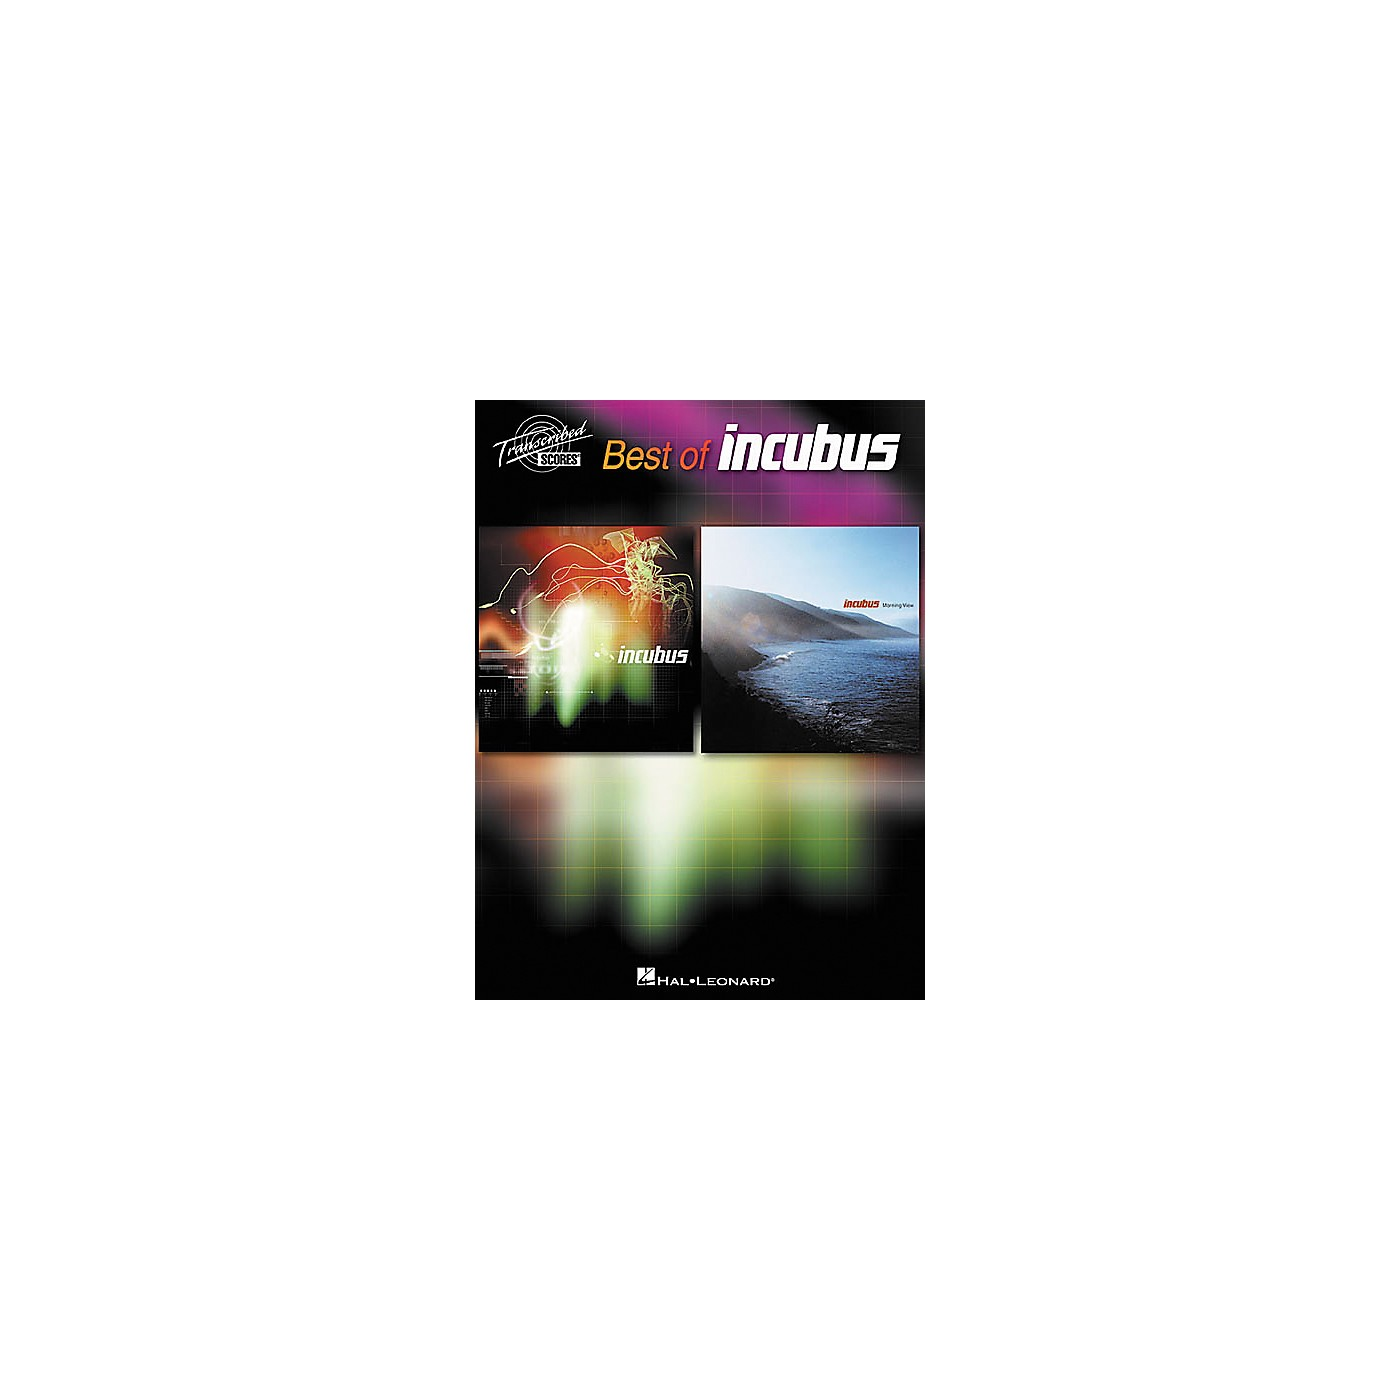 Hal Leonard Best of Incubus Transcribed Score Book thumbnail